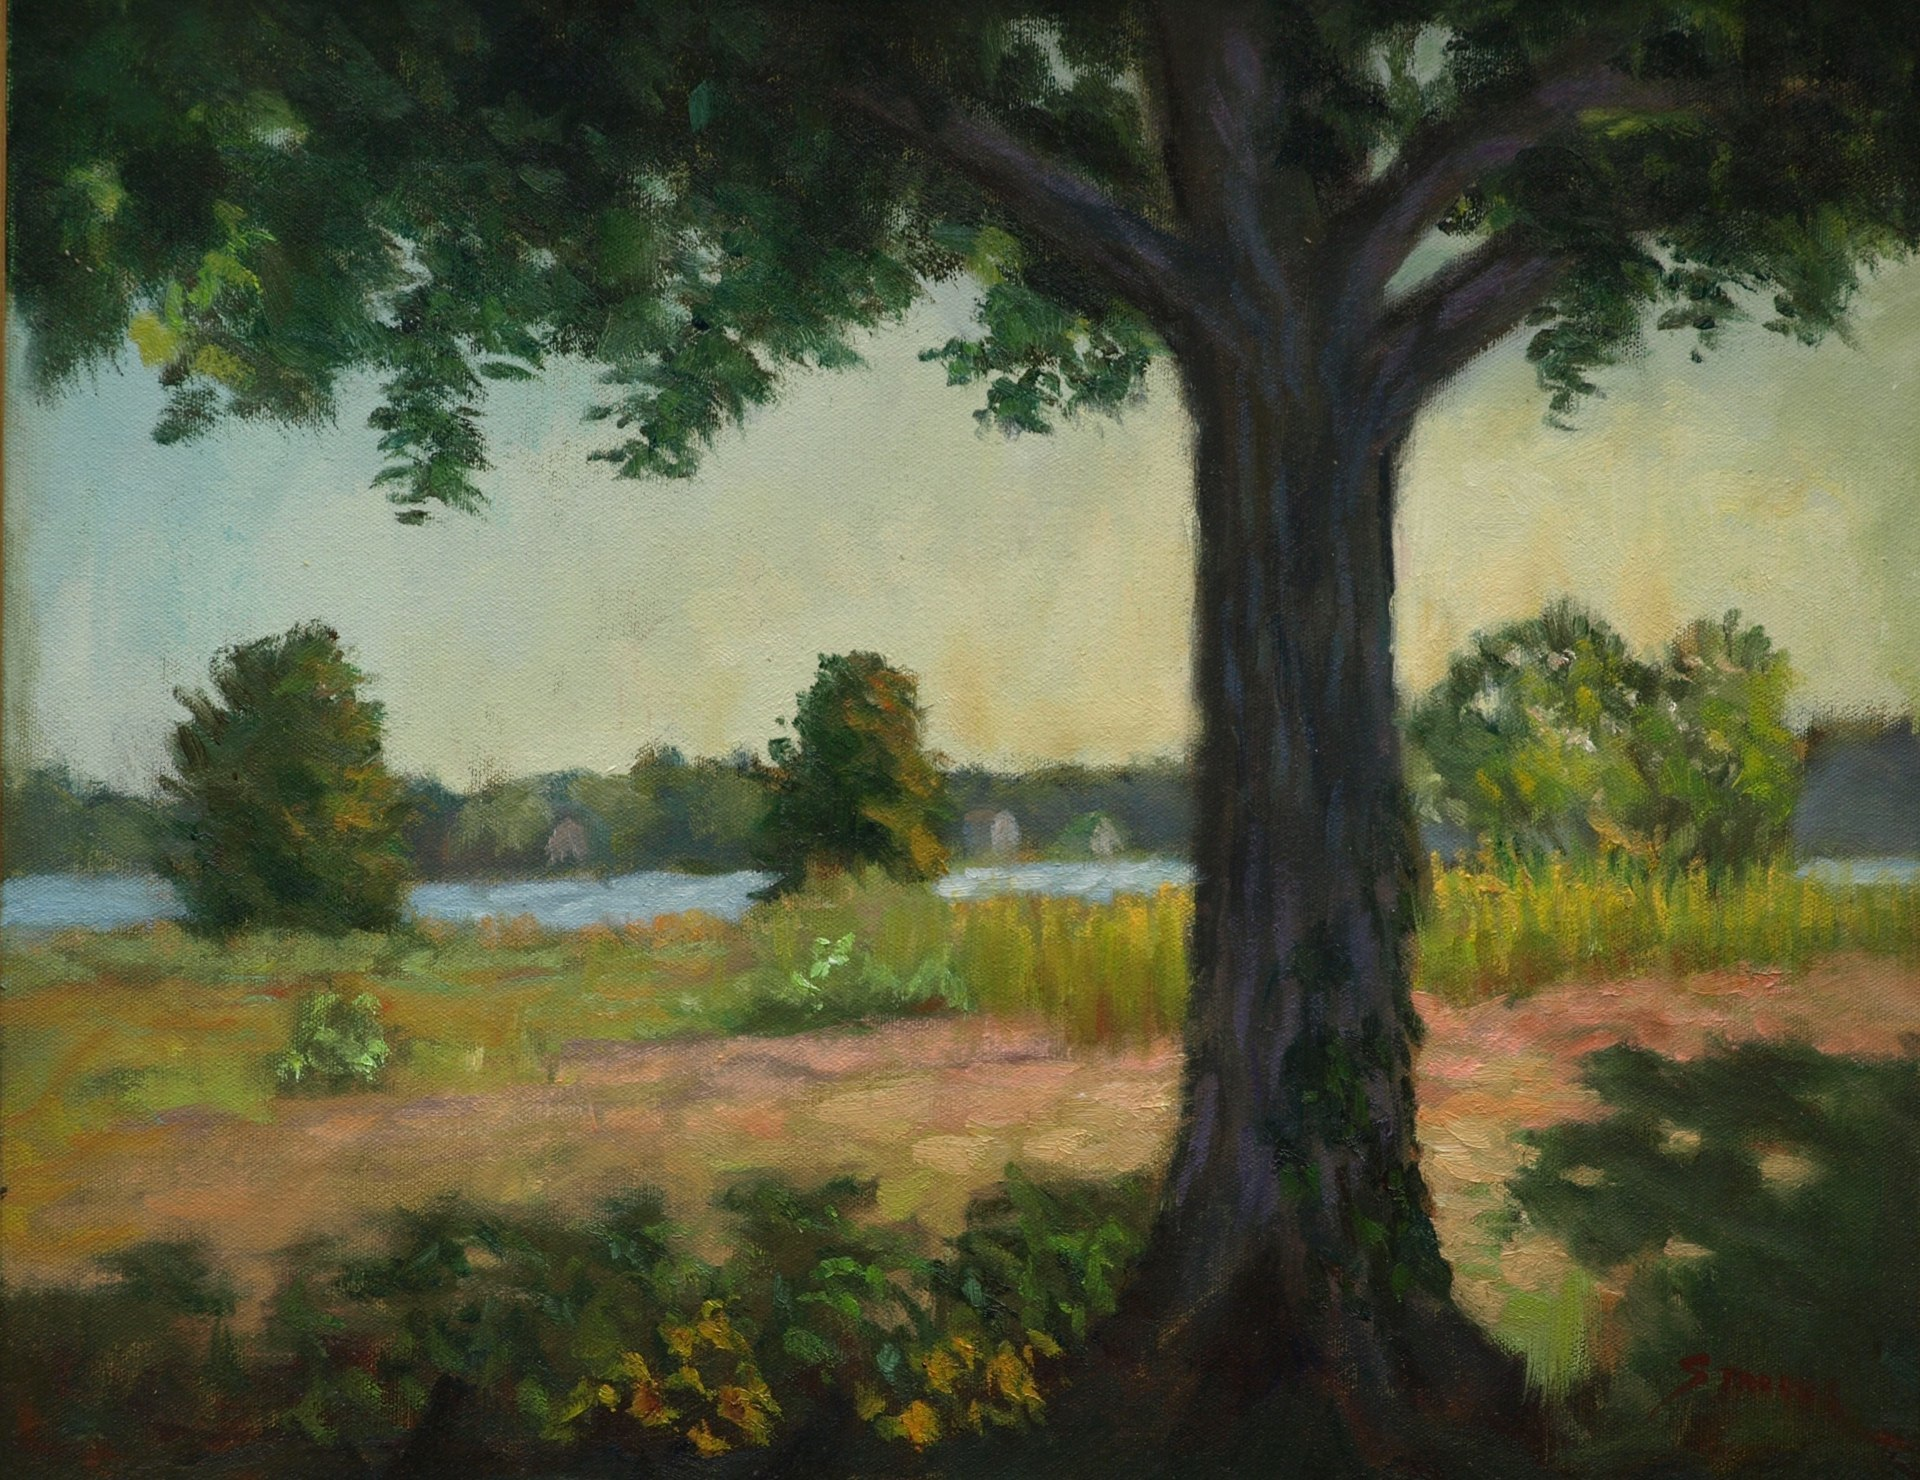 Mystic Riverside, Oil on Canvas, 16 x 20 Inches, by Richard Stalter, $400